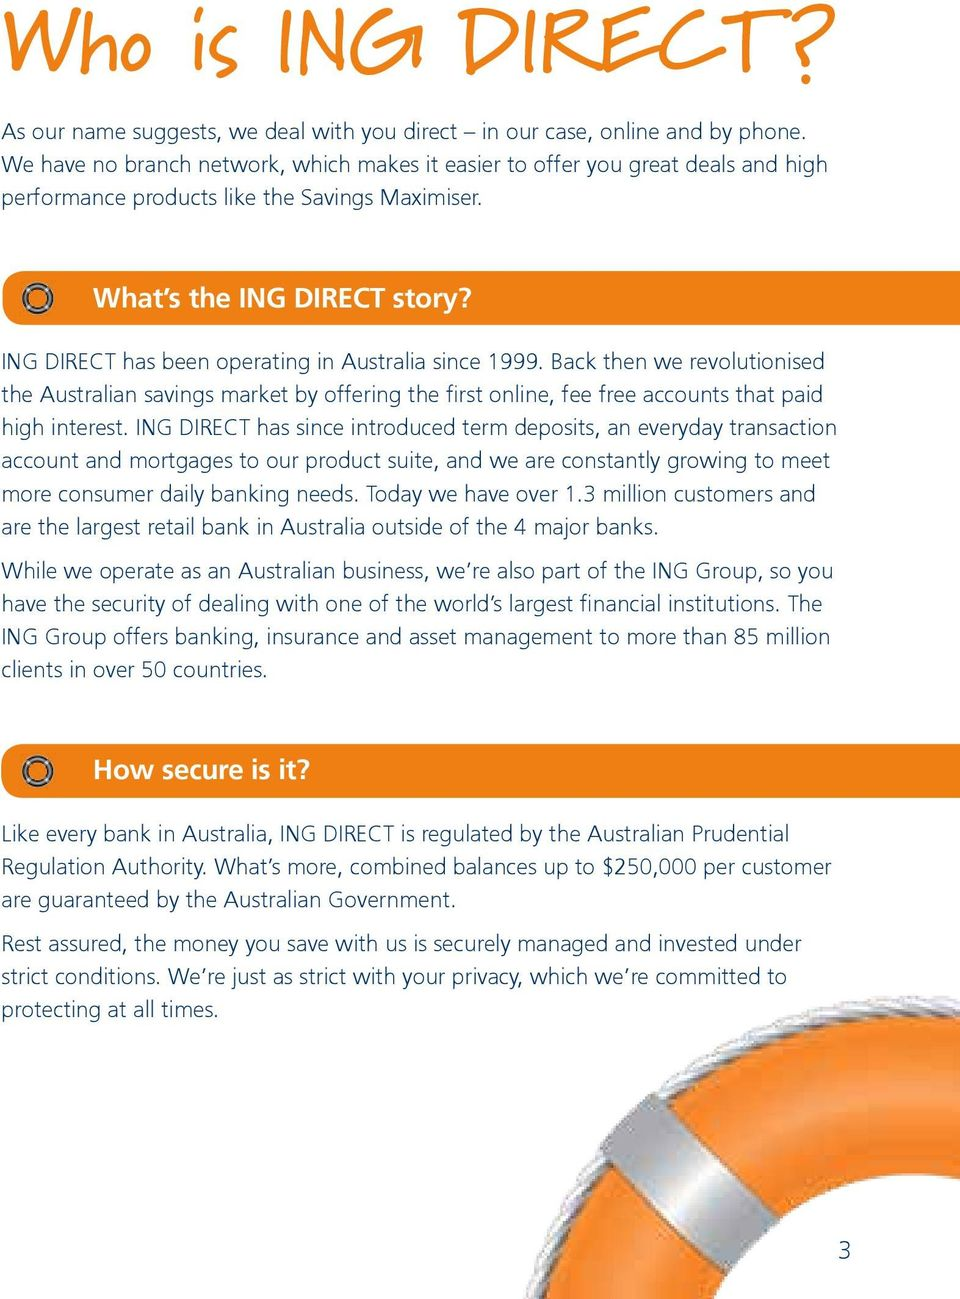 ING DIRECT has been operating in Australia since 1999. Back then we revolutionised the Australian savings market by offering the first online, fee free accounts that paid high interest.